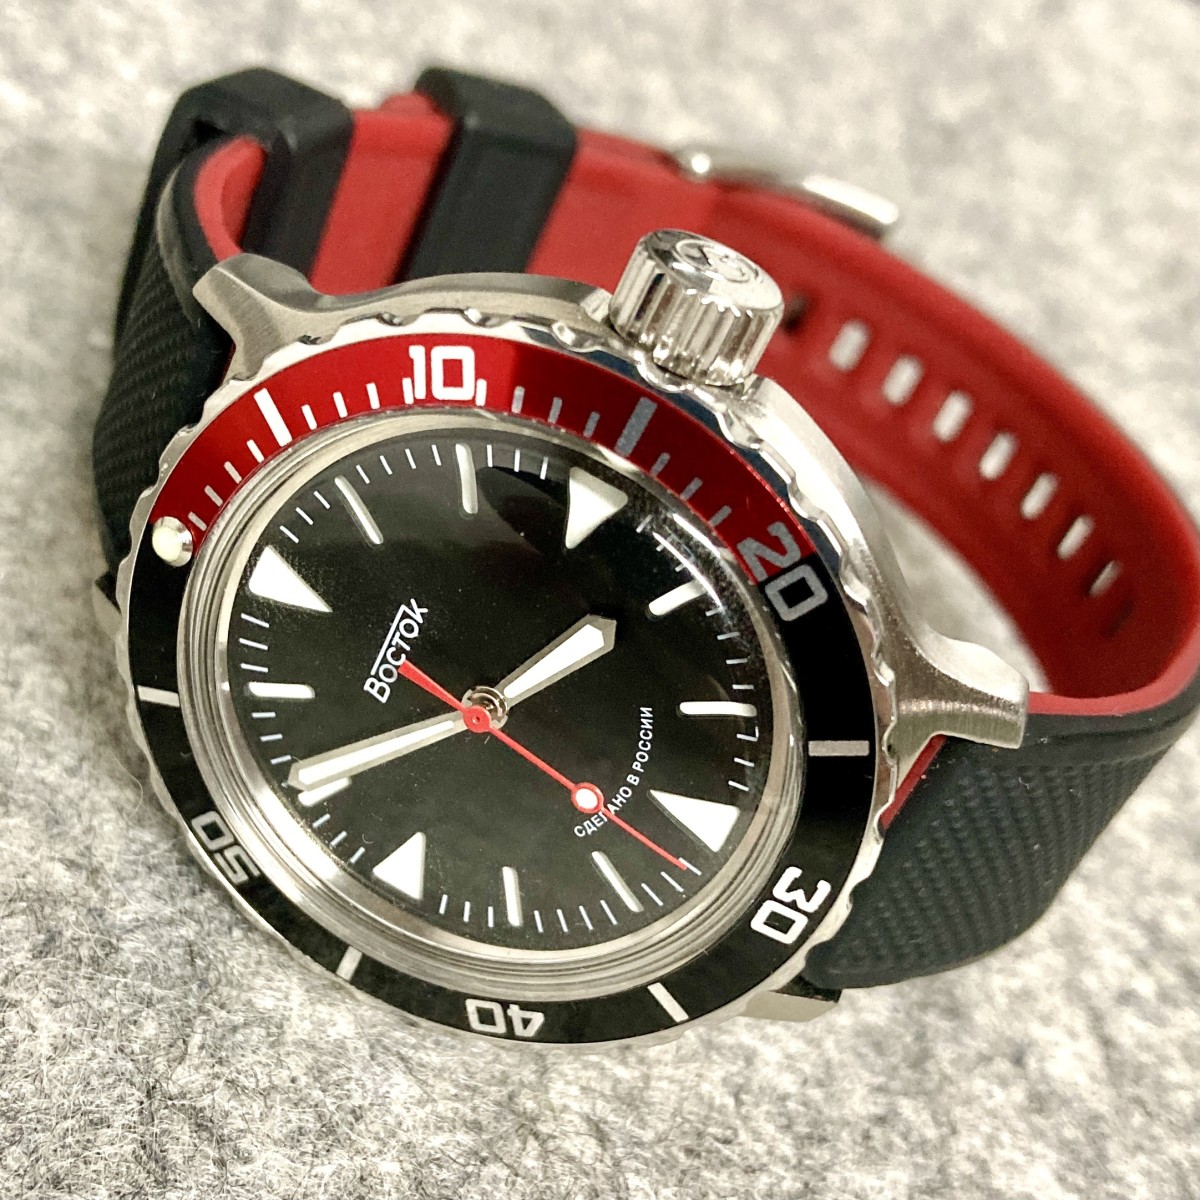 Vostok Amphibia SE on a black and crimson Barton Elite Silicone band